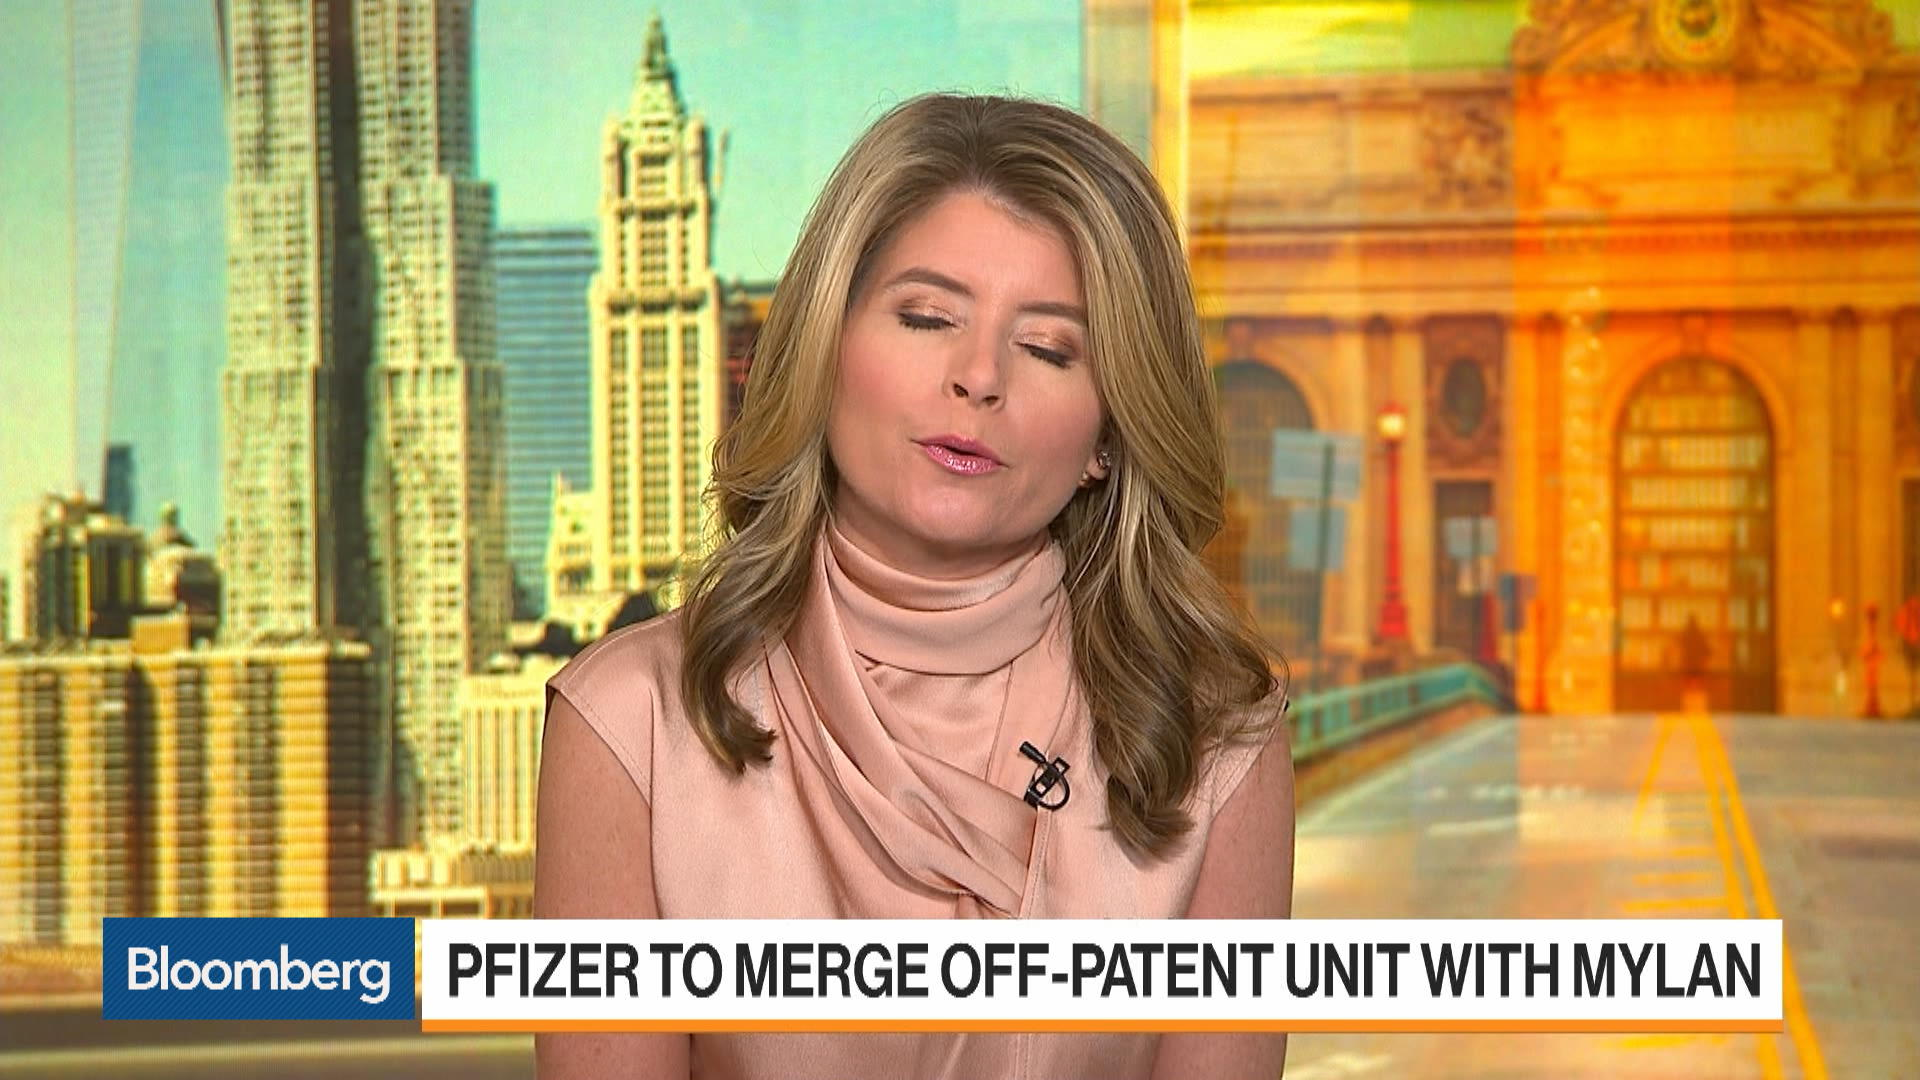 Pfizer-Mylan Deal 'Well-Valued' for Mylan, Says Raffat